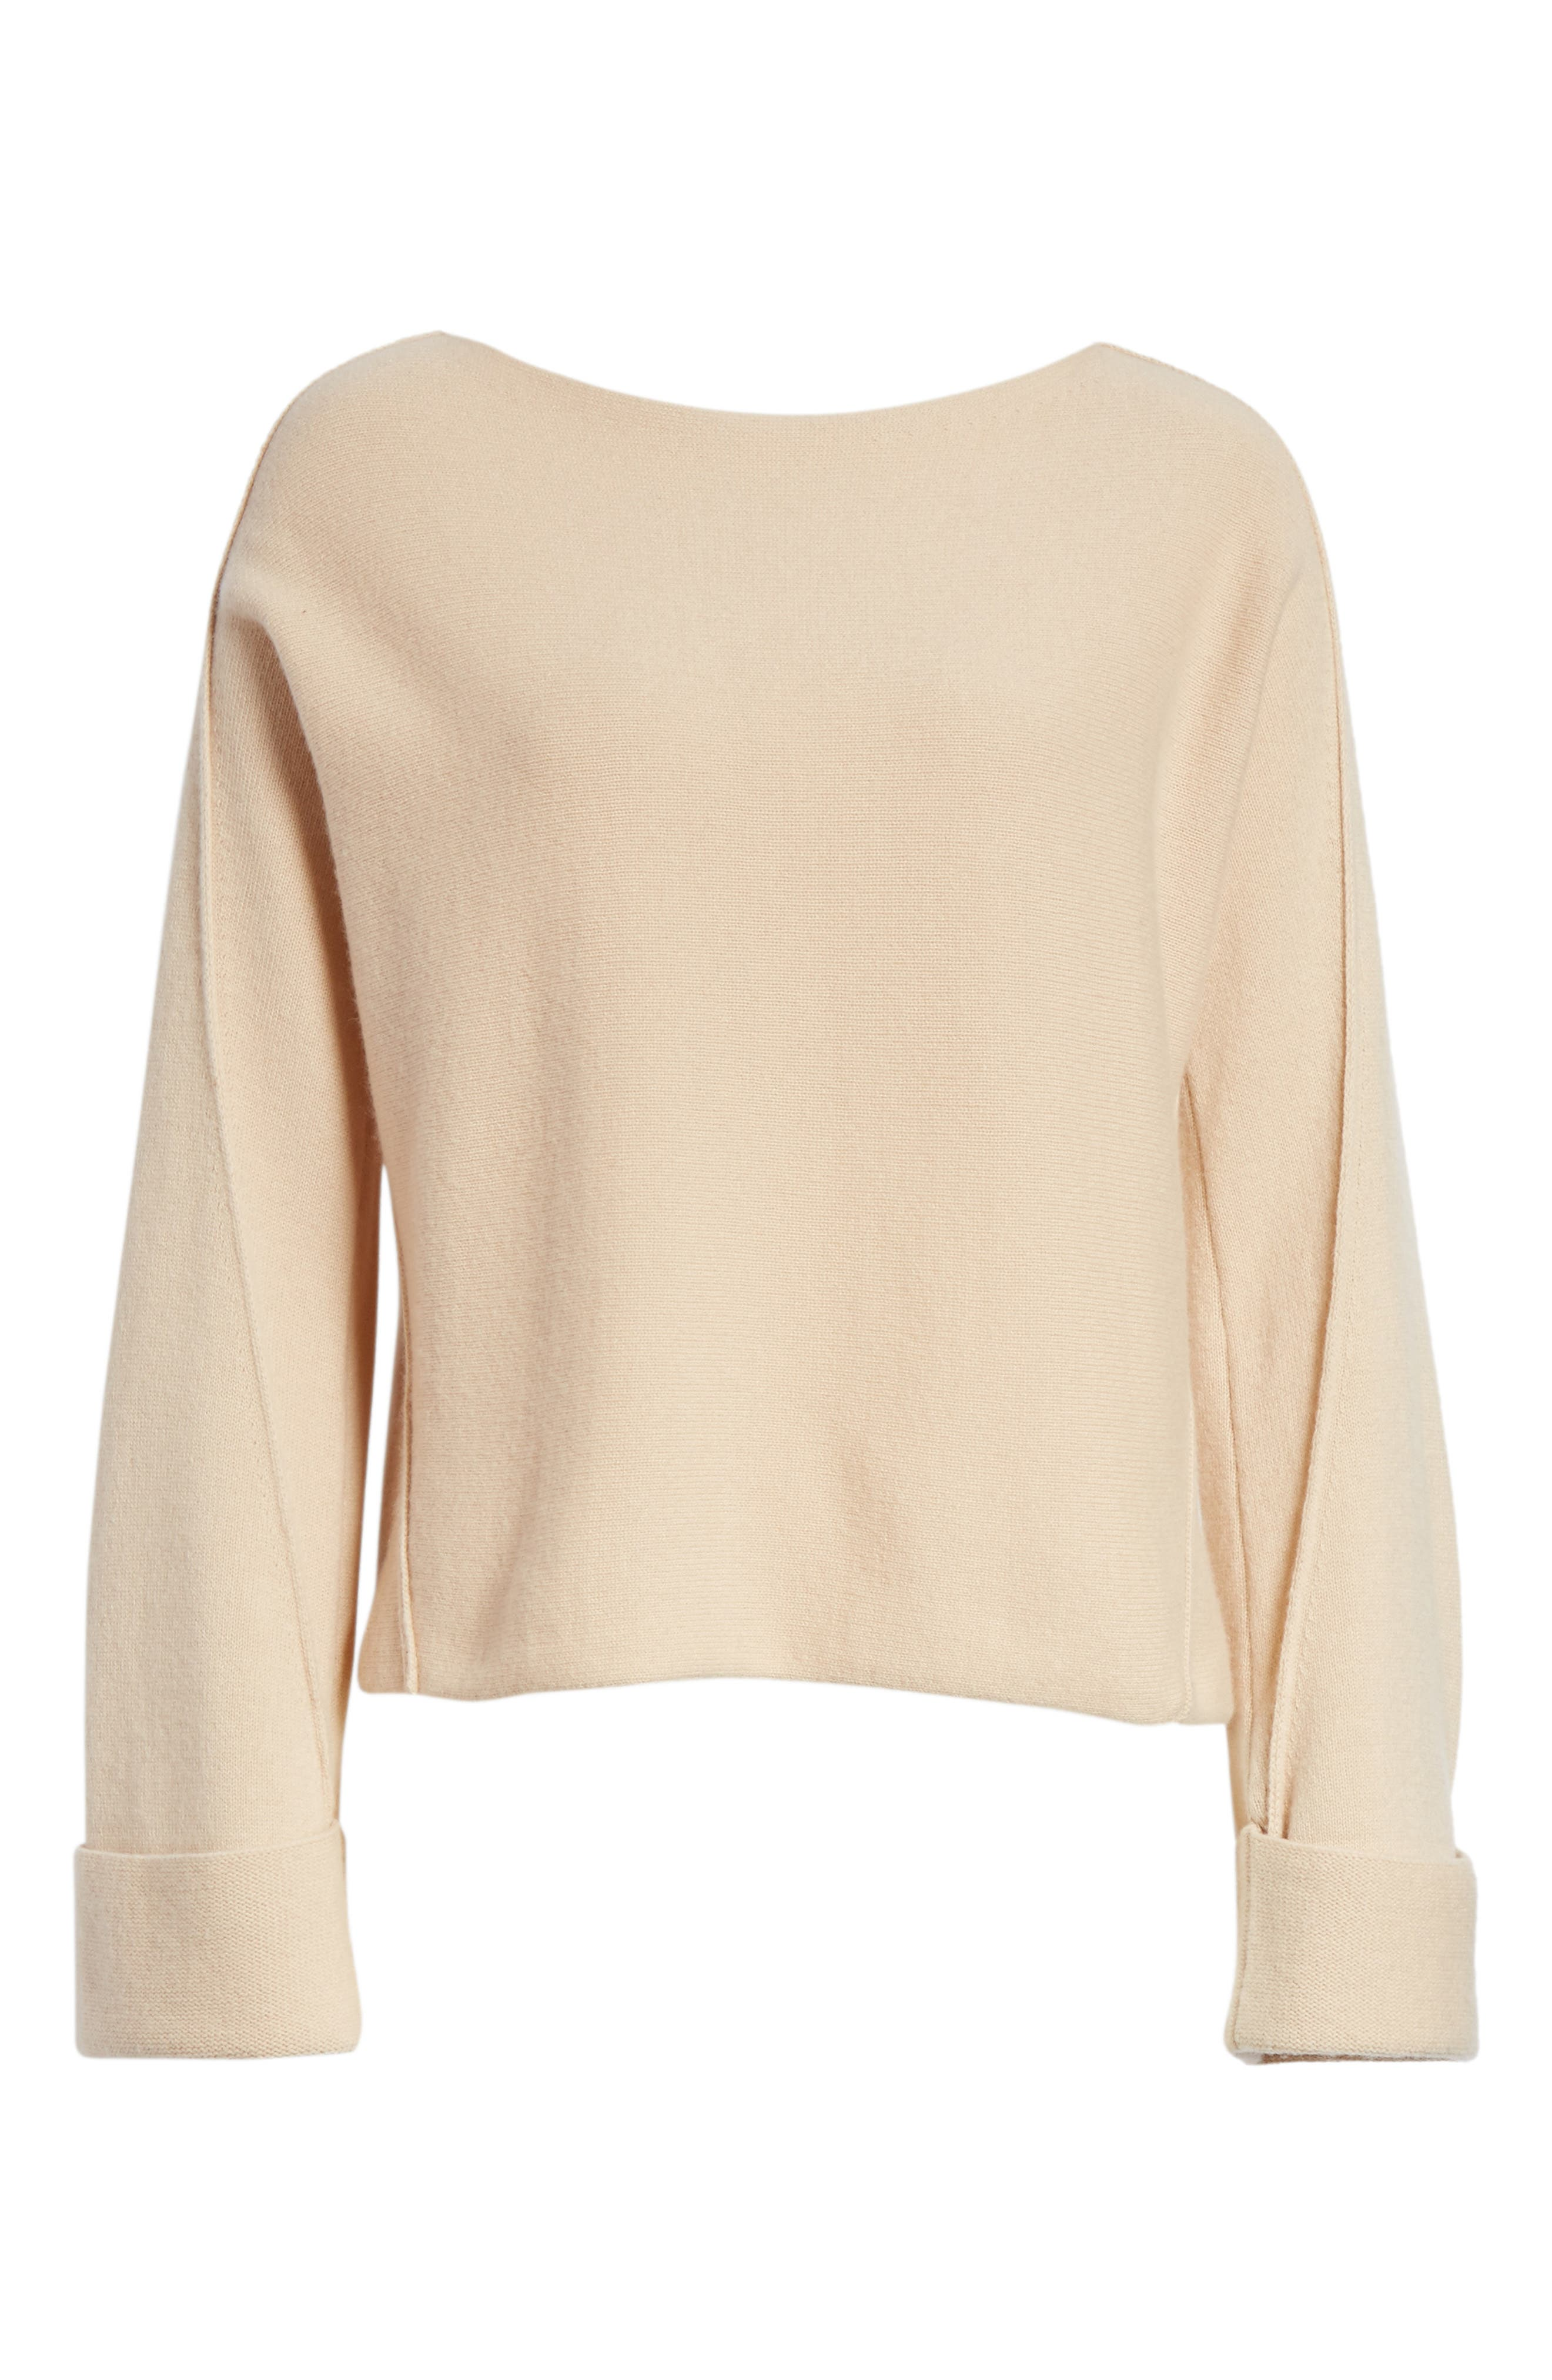 Cuffed Sleeve Wool & Cashmere Sweater,                             Alternate thumbnail 6, color,                             Praline